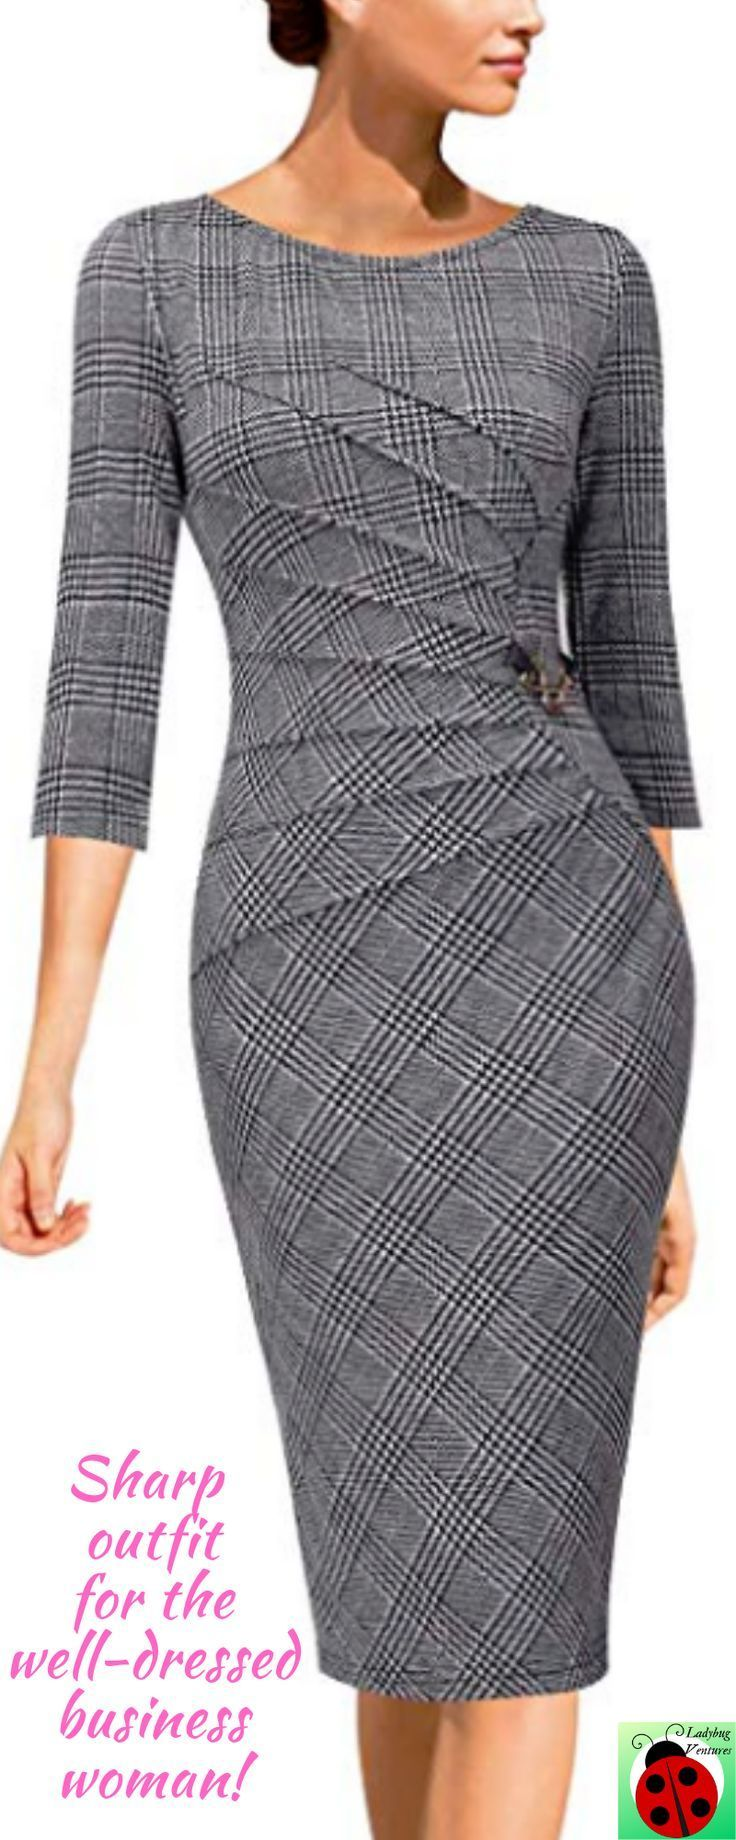 enhance your look with this striking, elegant, business